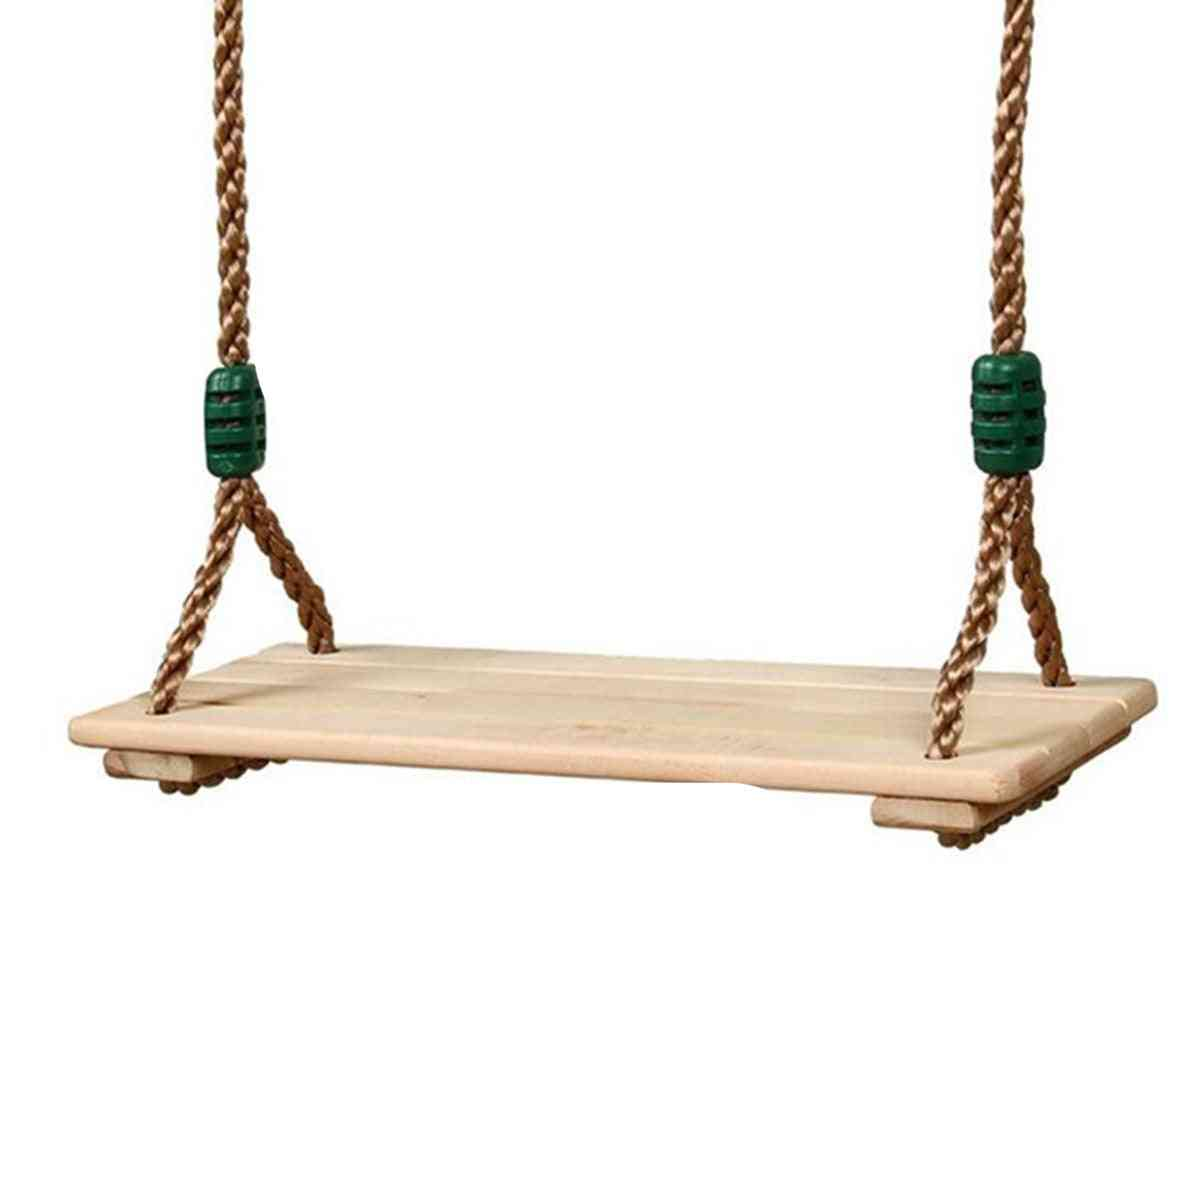 Adults And Children Swing Wooden Toy - With Rope